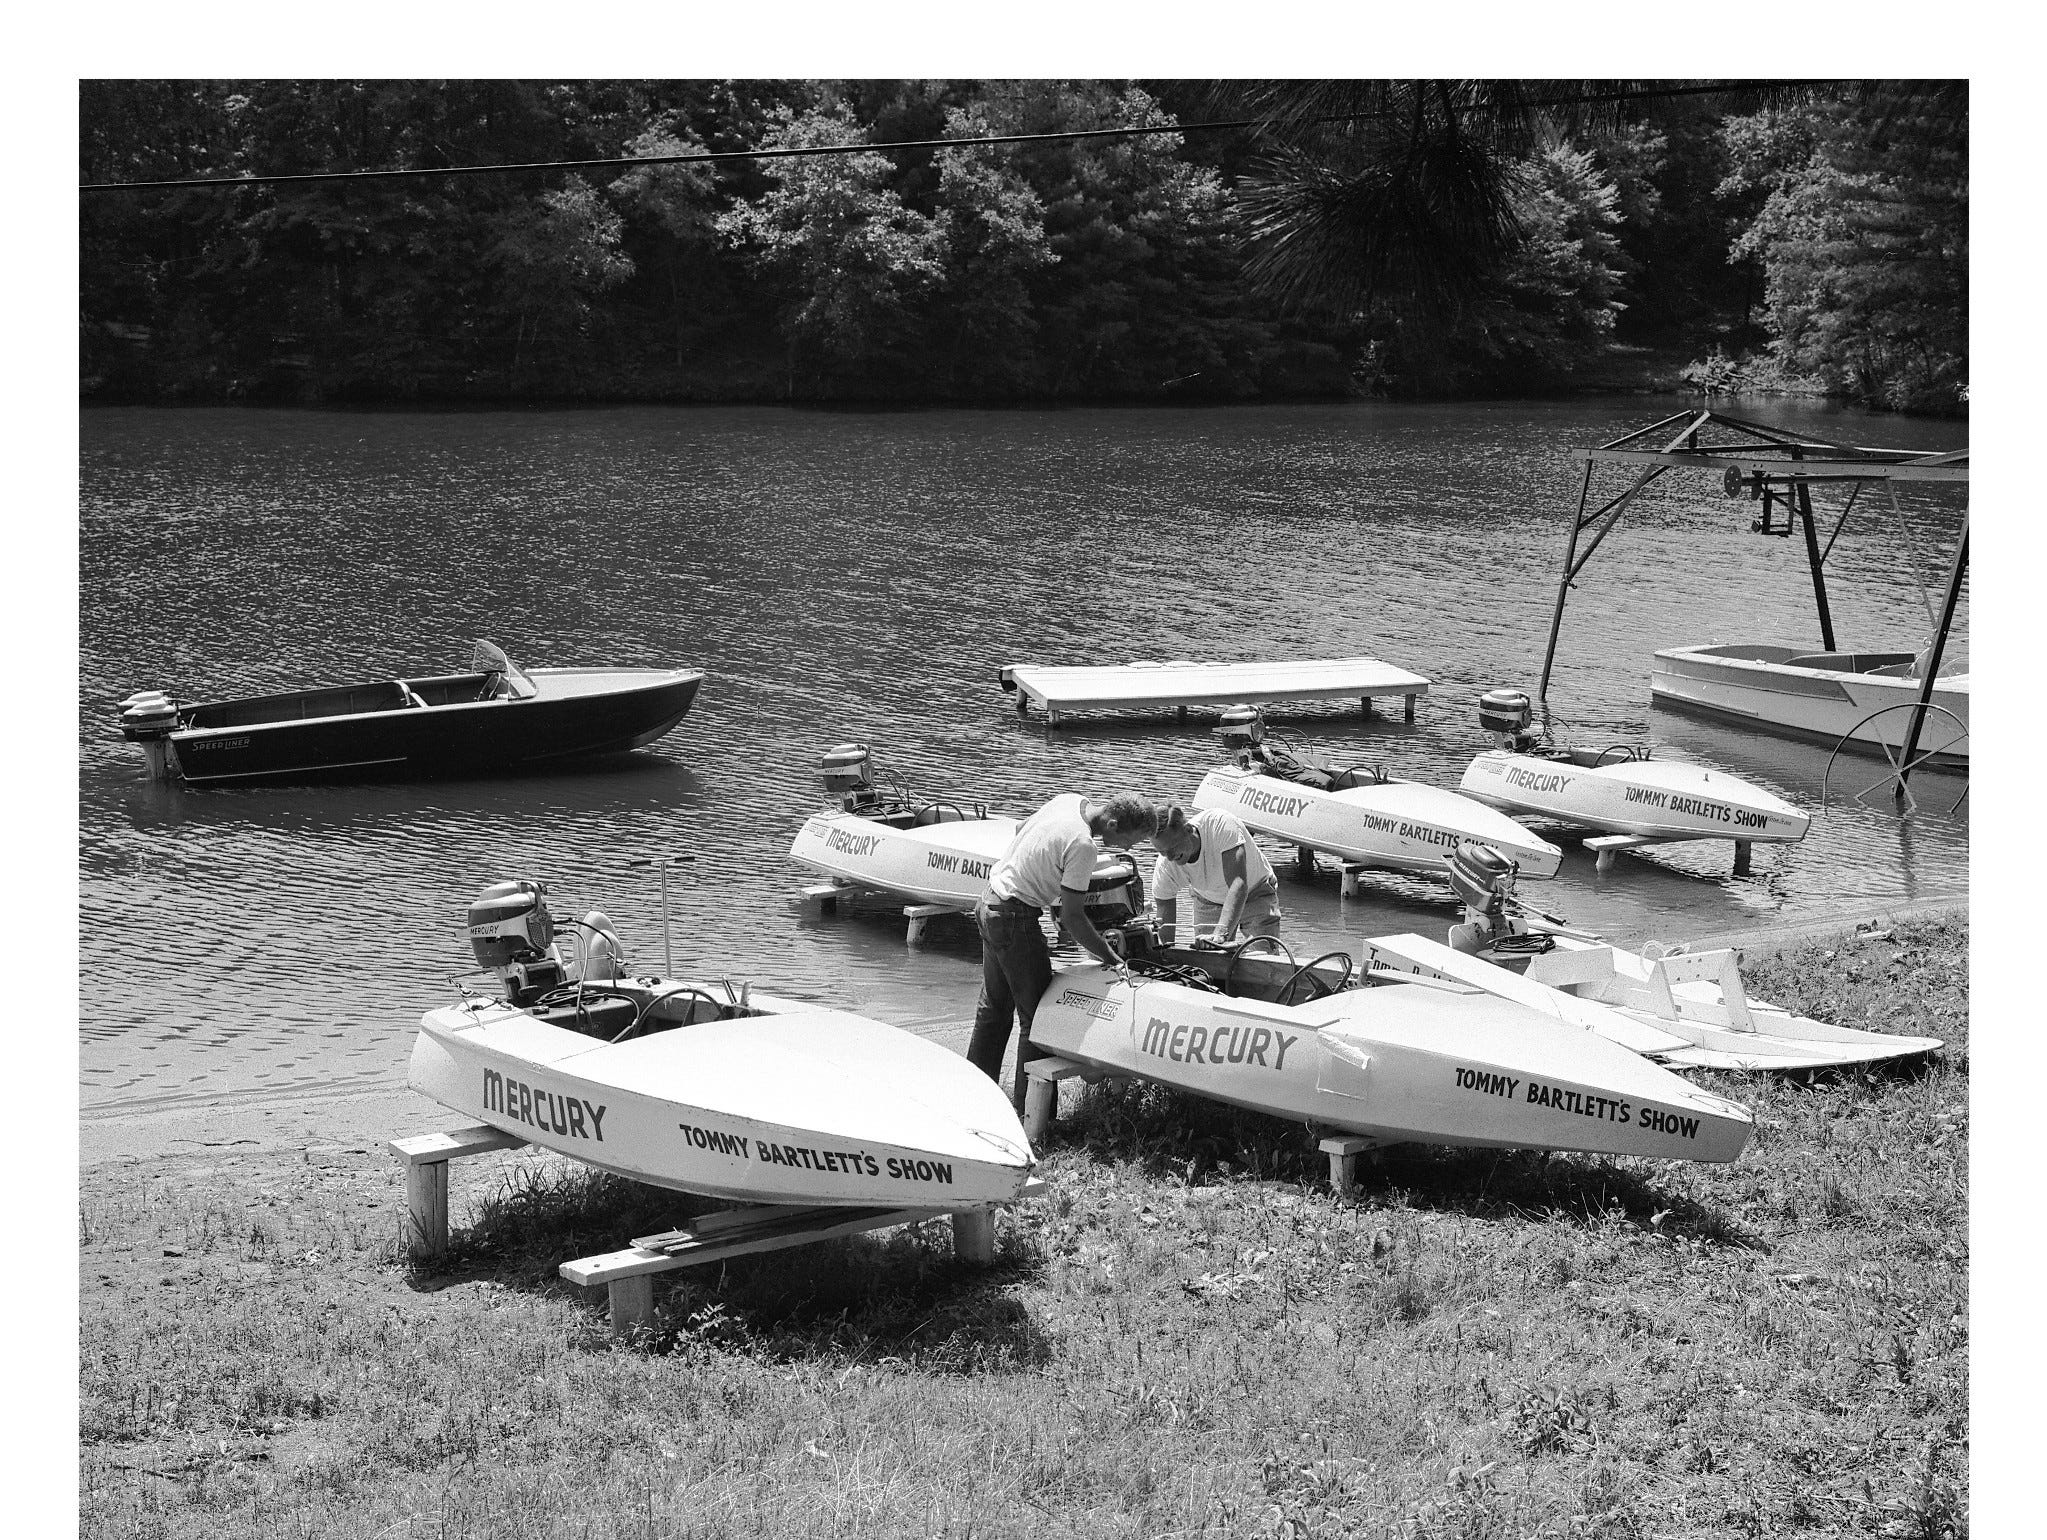 A fleet of boats powered by Mercury Marine engine's at the Tommy Bartlett show in 1956.